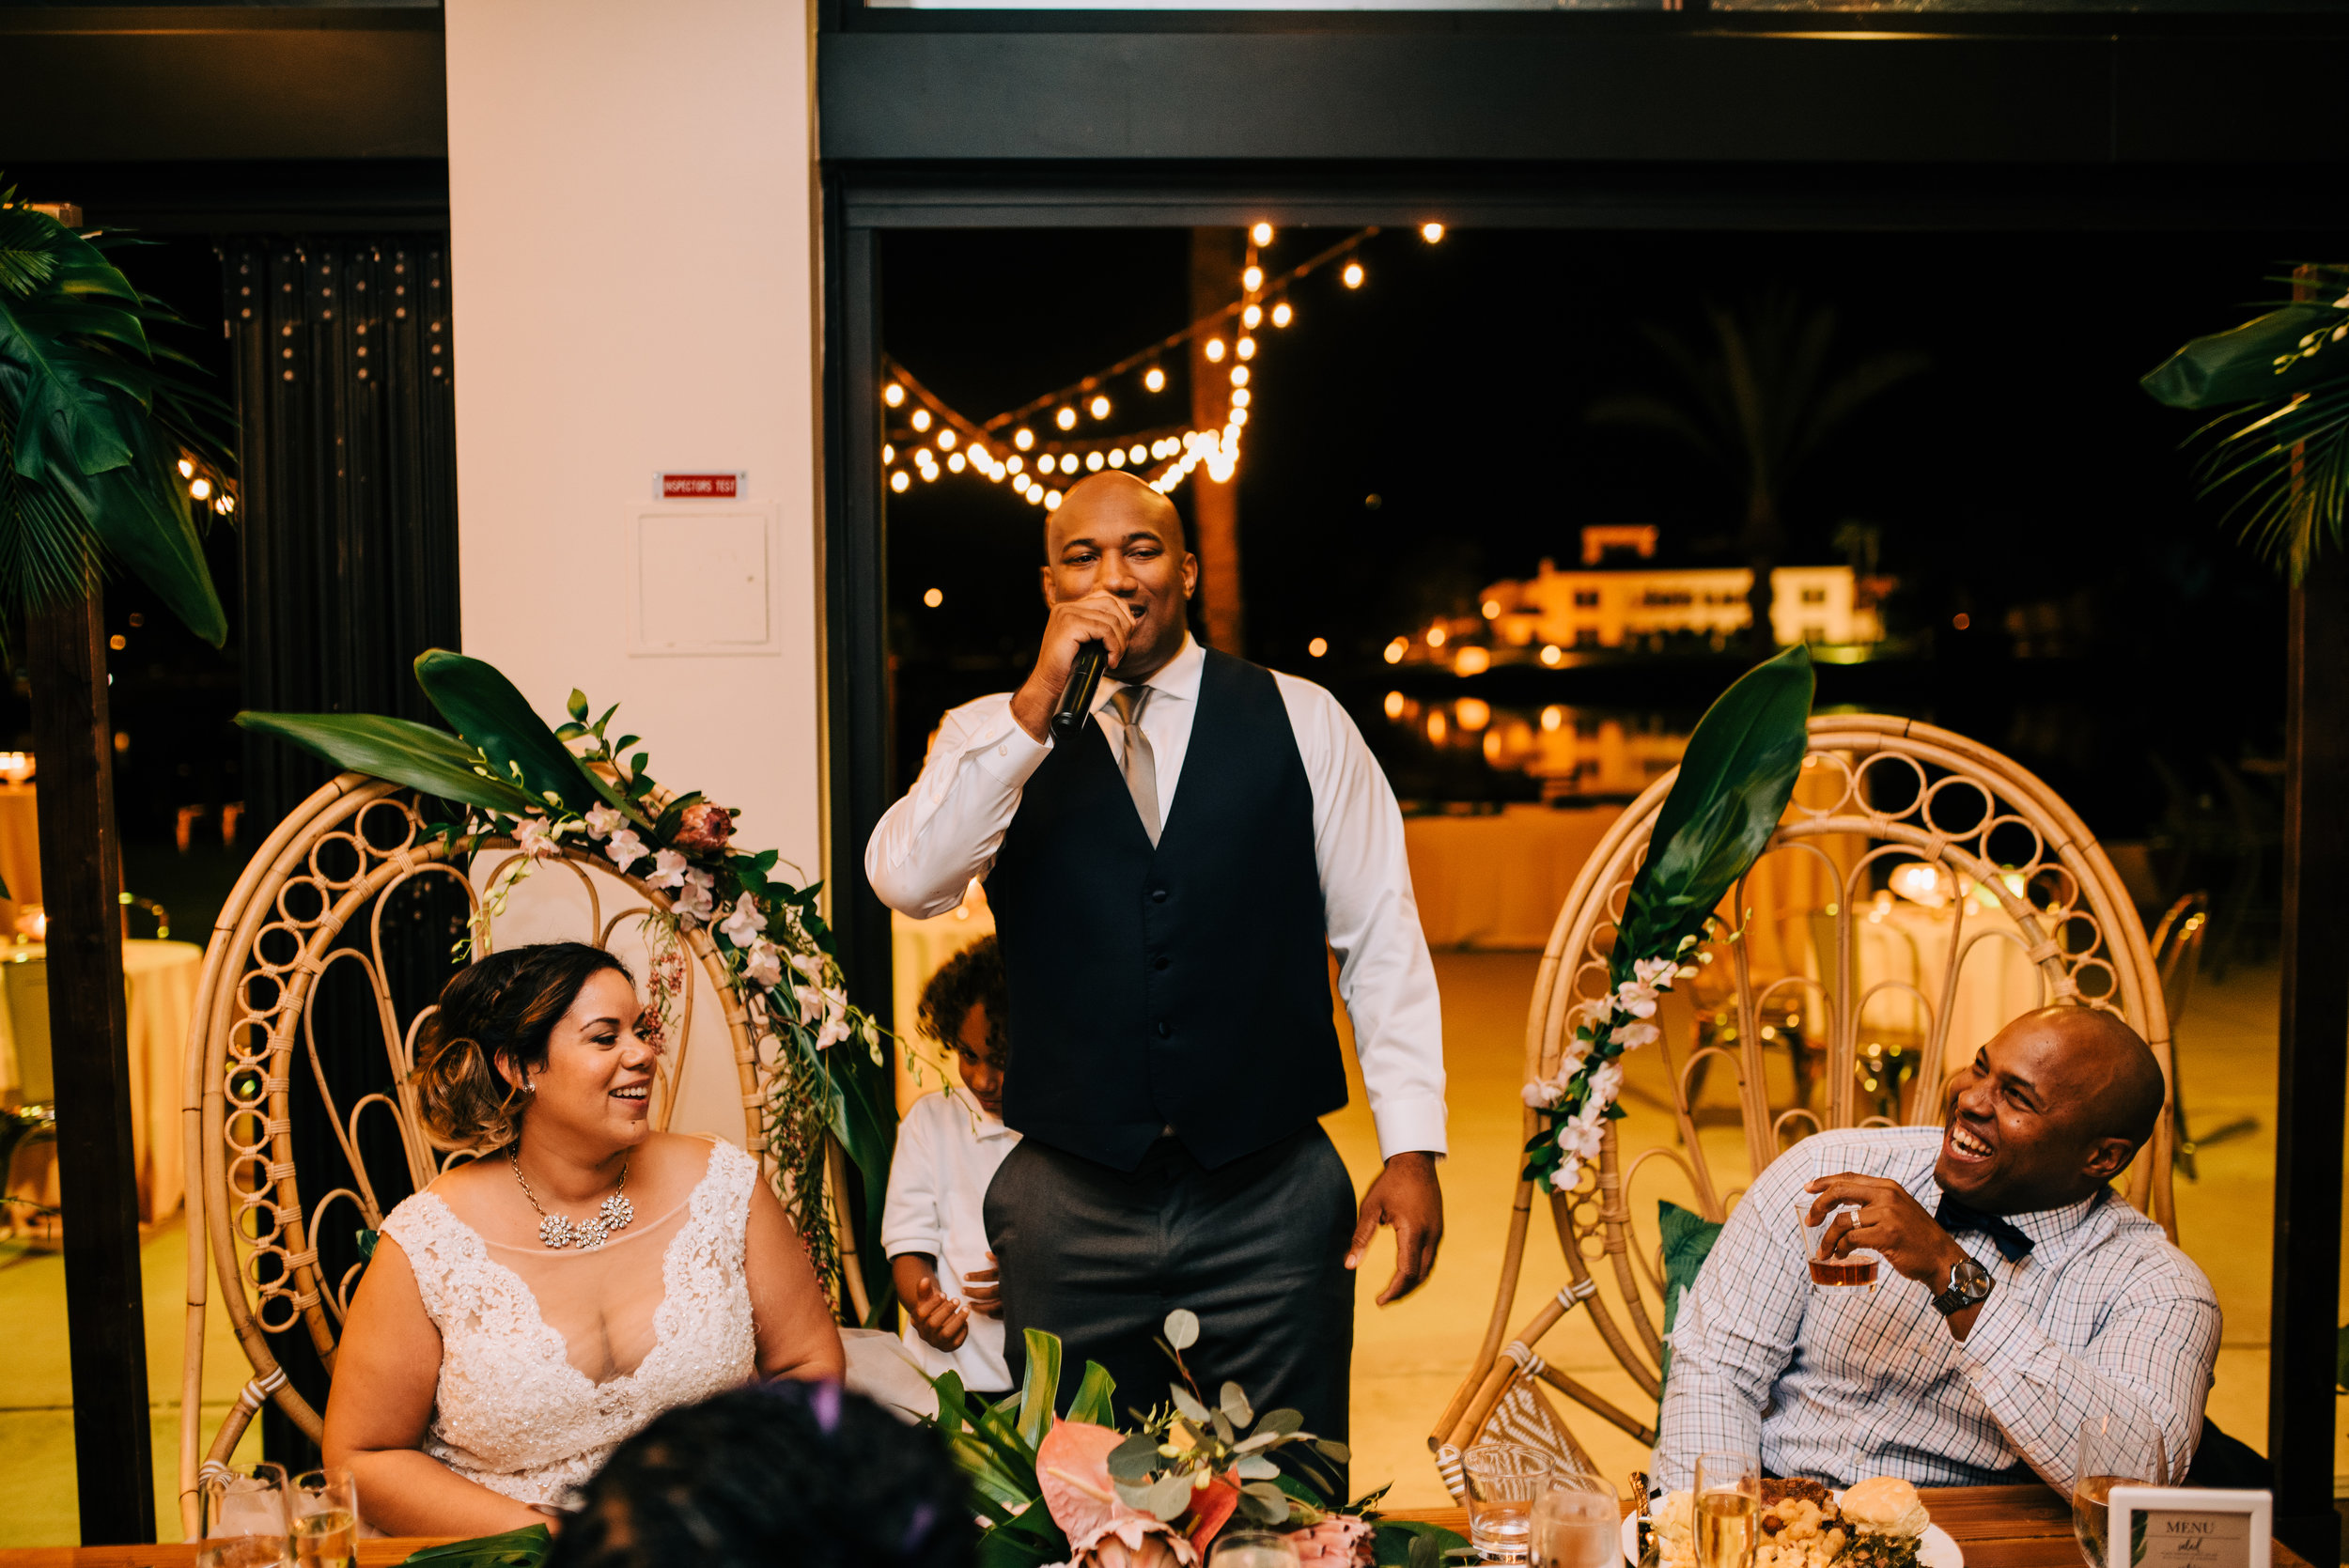 29 bride groom wedding reception best man toast laughs funny best man toast childhood best friend wedding toast Life Design Events photos by Josh Snyder Photography.jpg